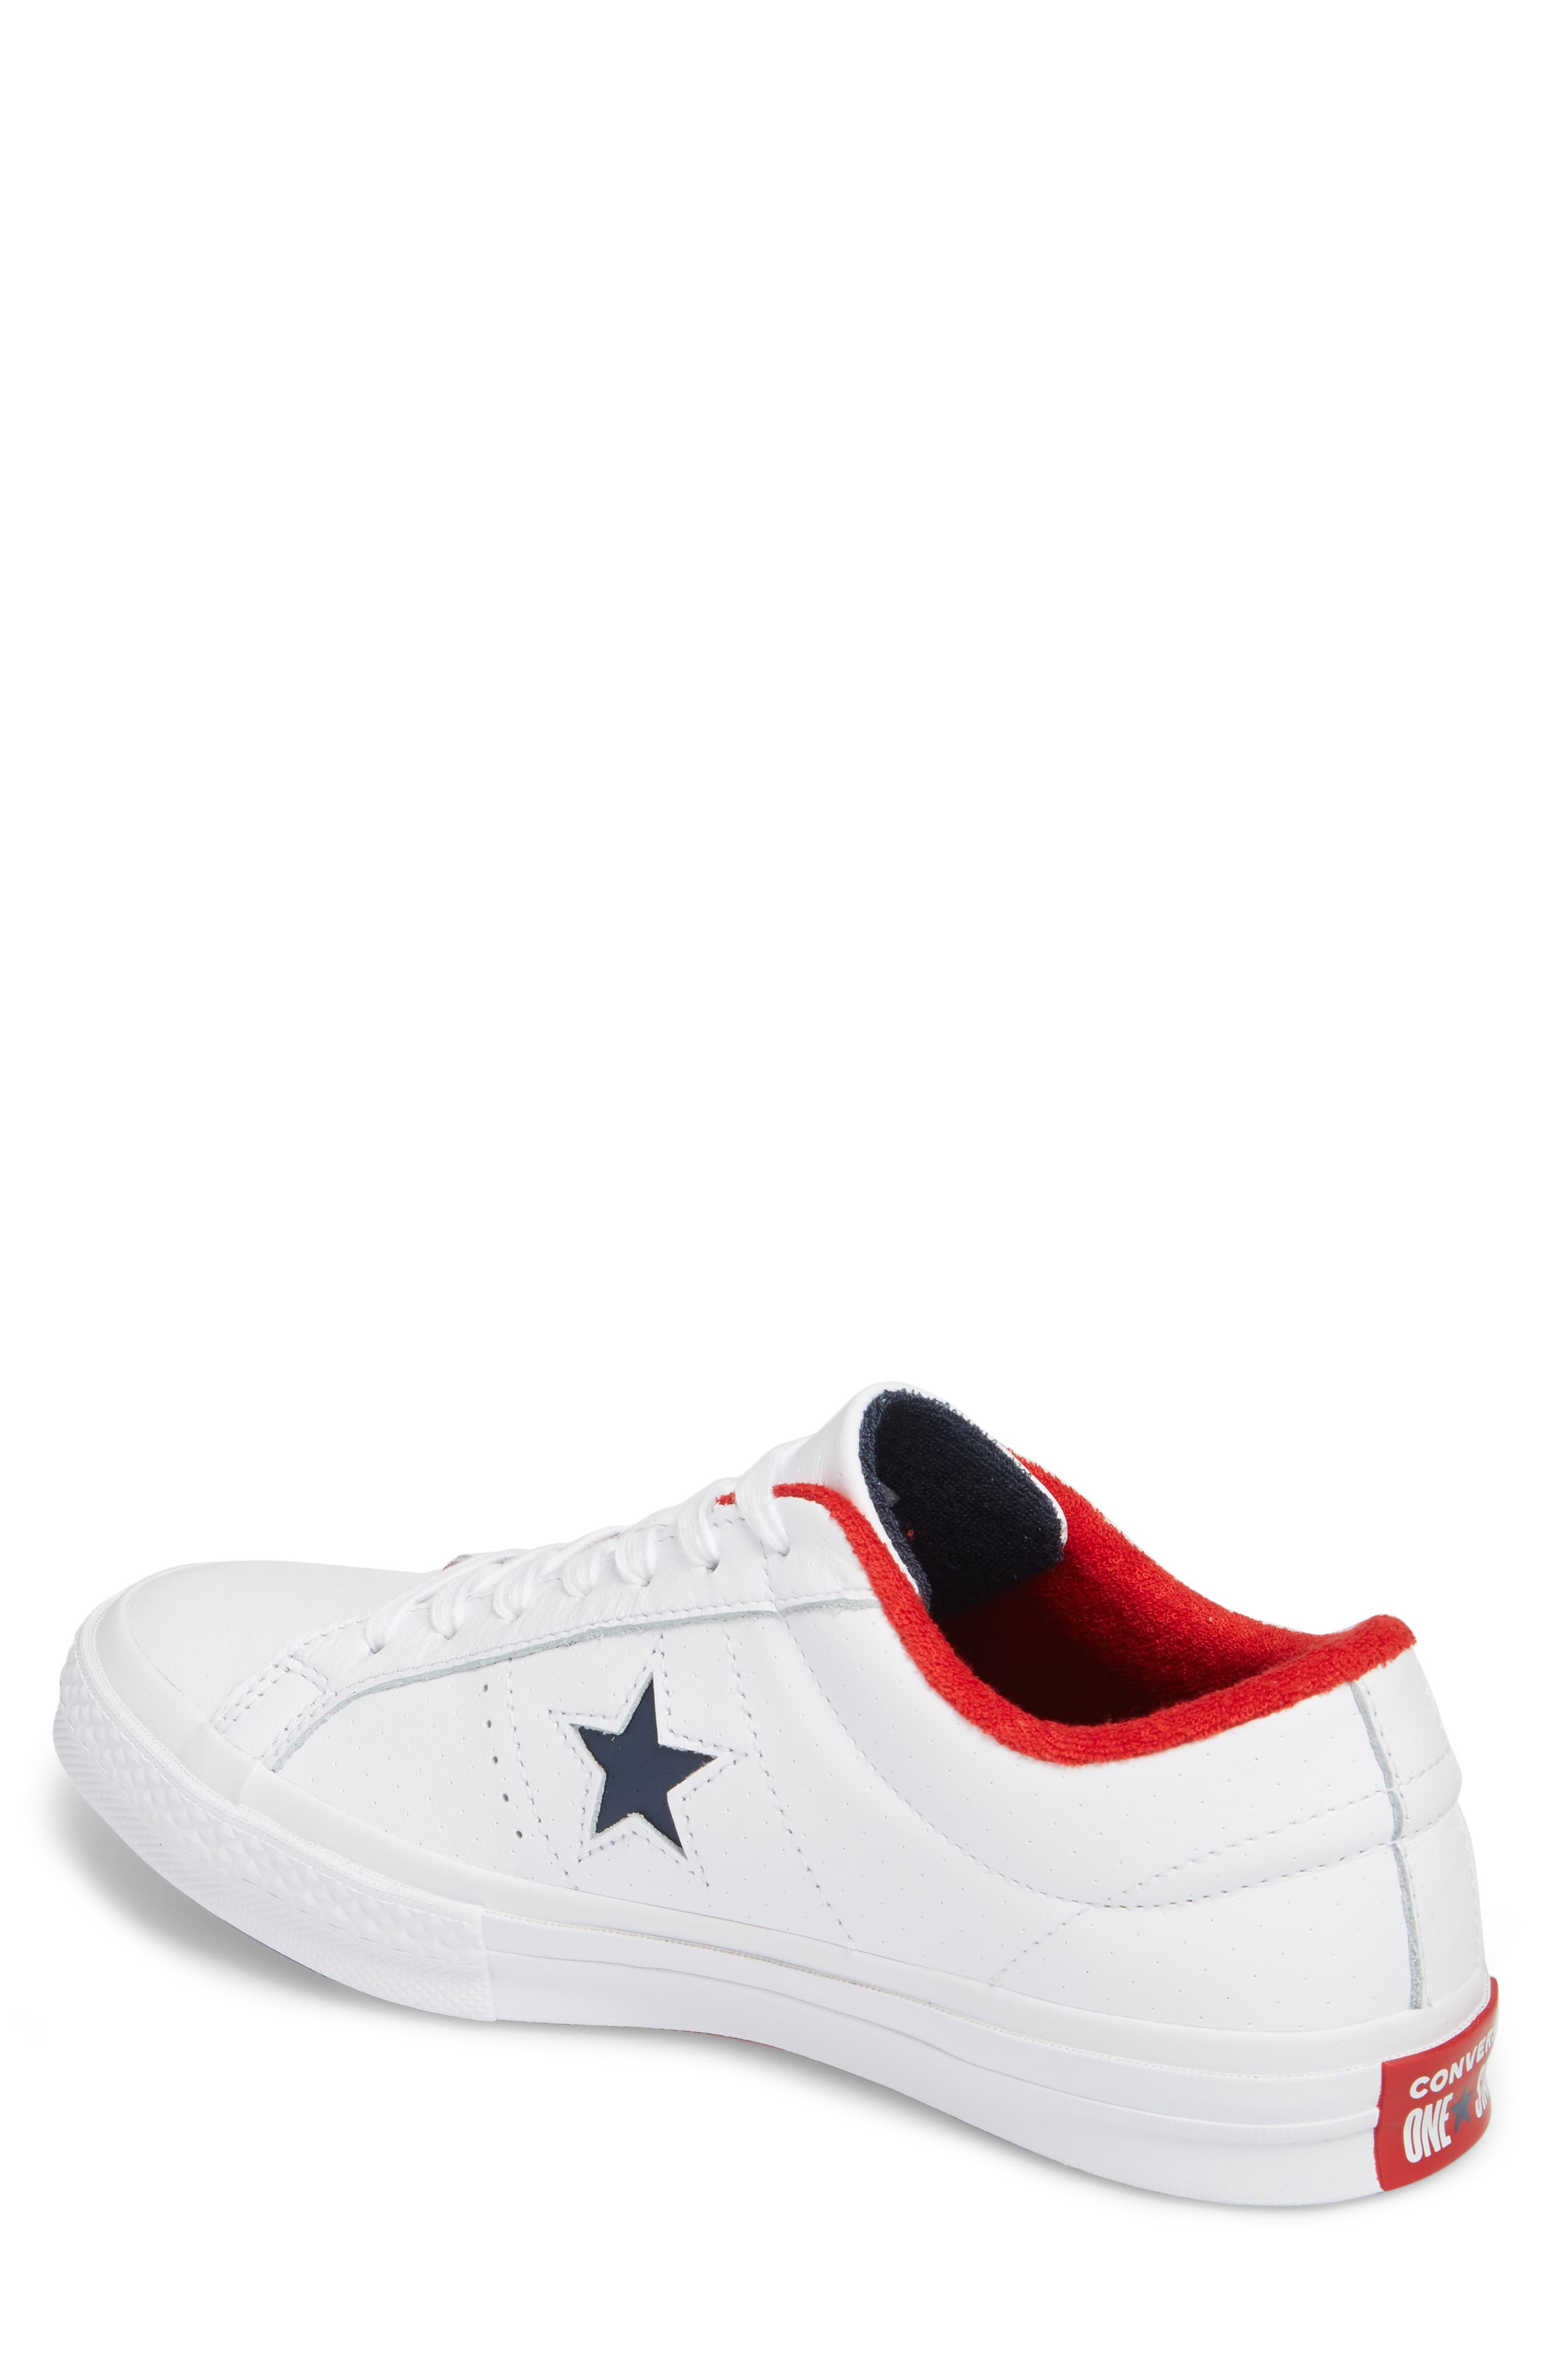 Chuck Taylor<sup>®</sup> One Star Grand Slam Sneaker,                             Alternate thumbnail 2, color,                             White/ Navy Leather